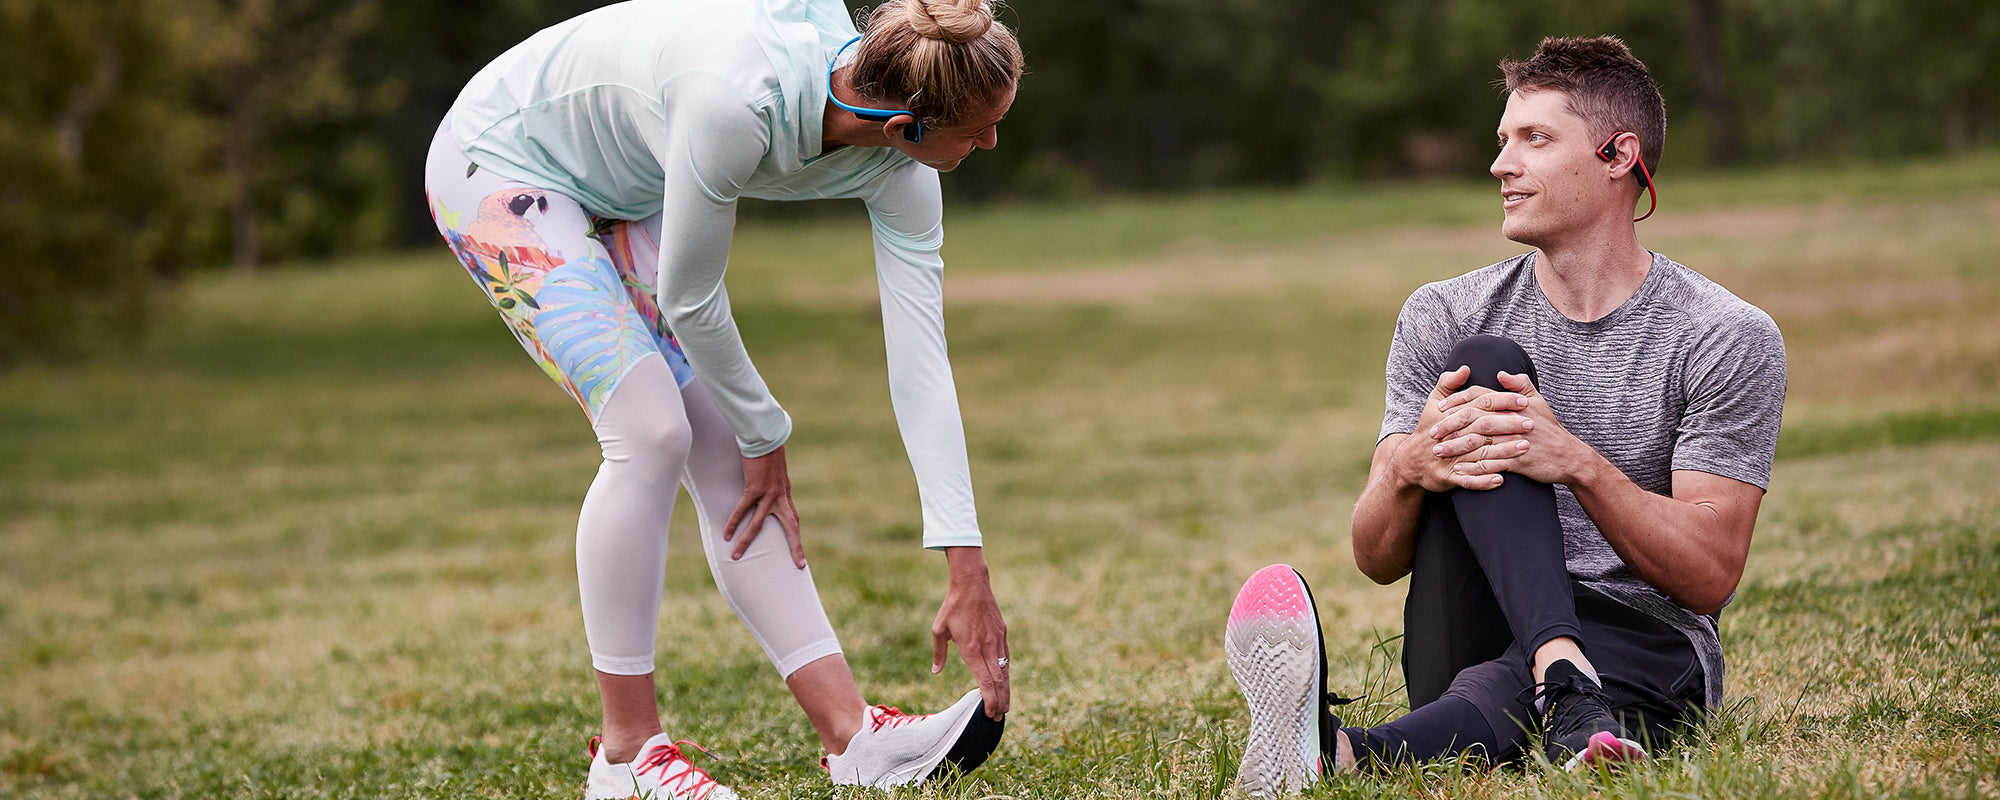 4 Ways to Get Back to Running After an Injury